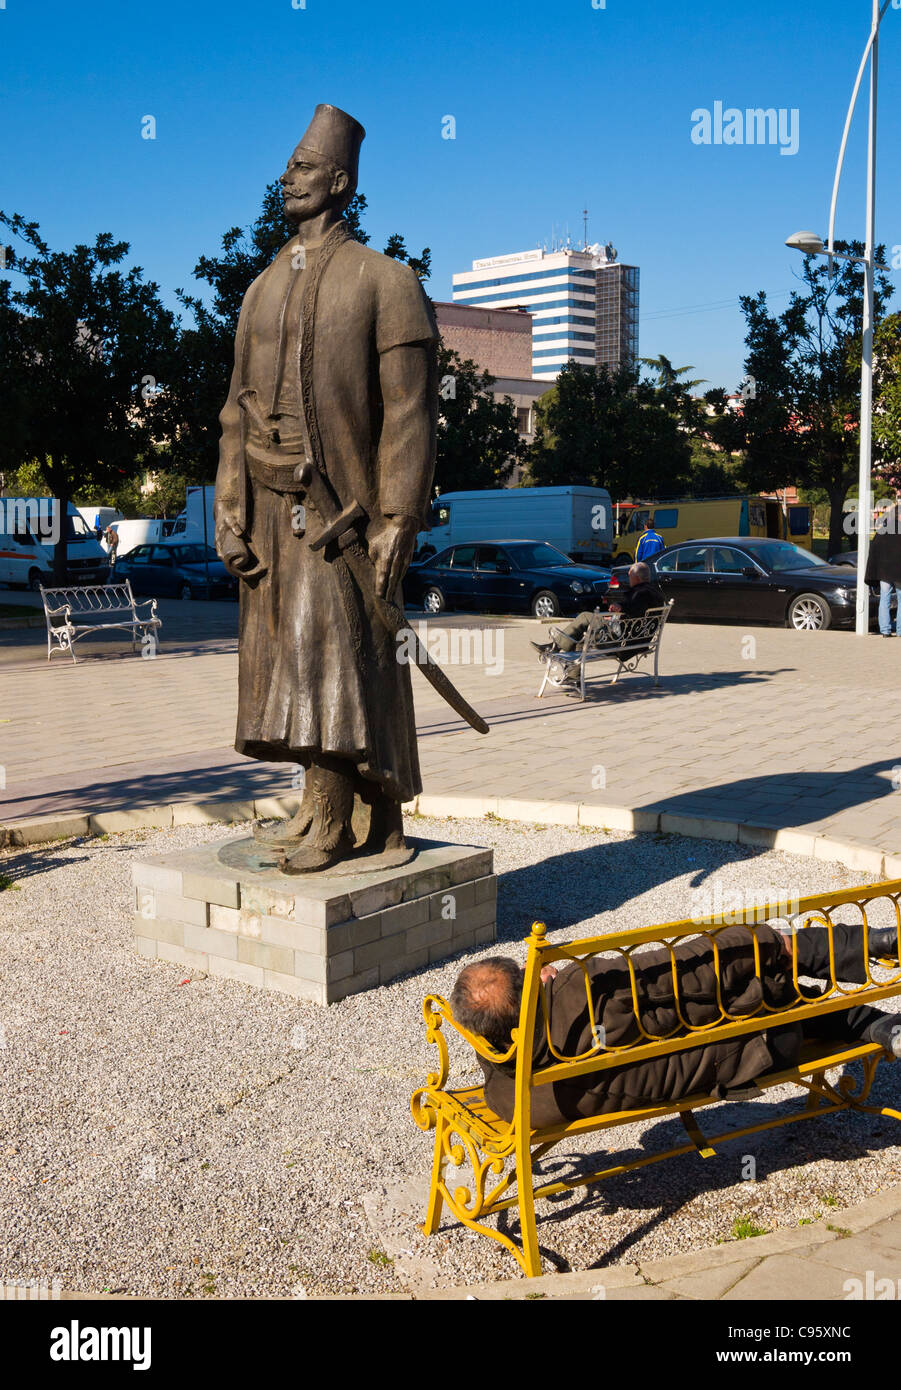 Statue of Sulejman Pashë Bargjini, legendary founder of Tirana, capital of Albania. - Stock Image